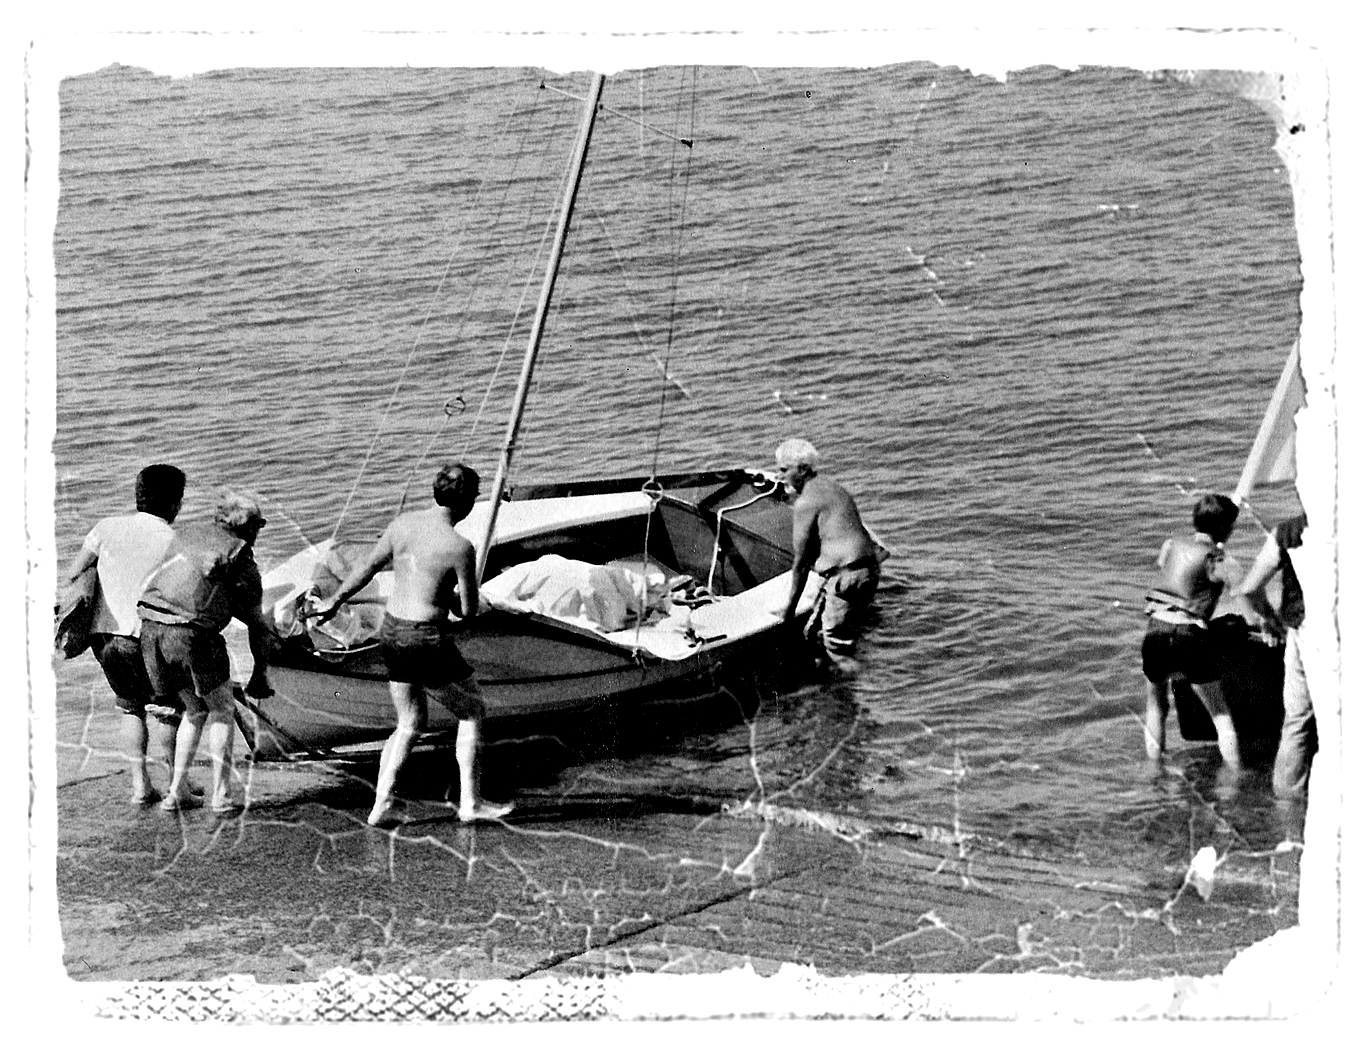 OLD BOYS AND BOATS by Rojer Weightman